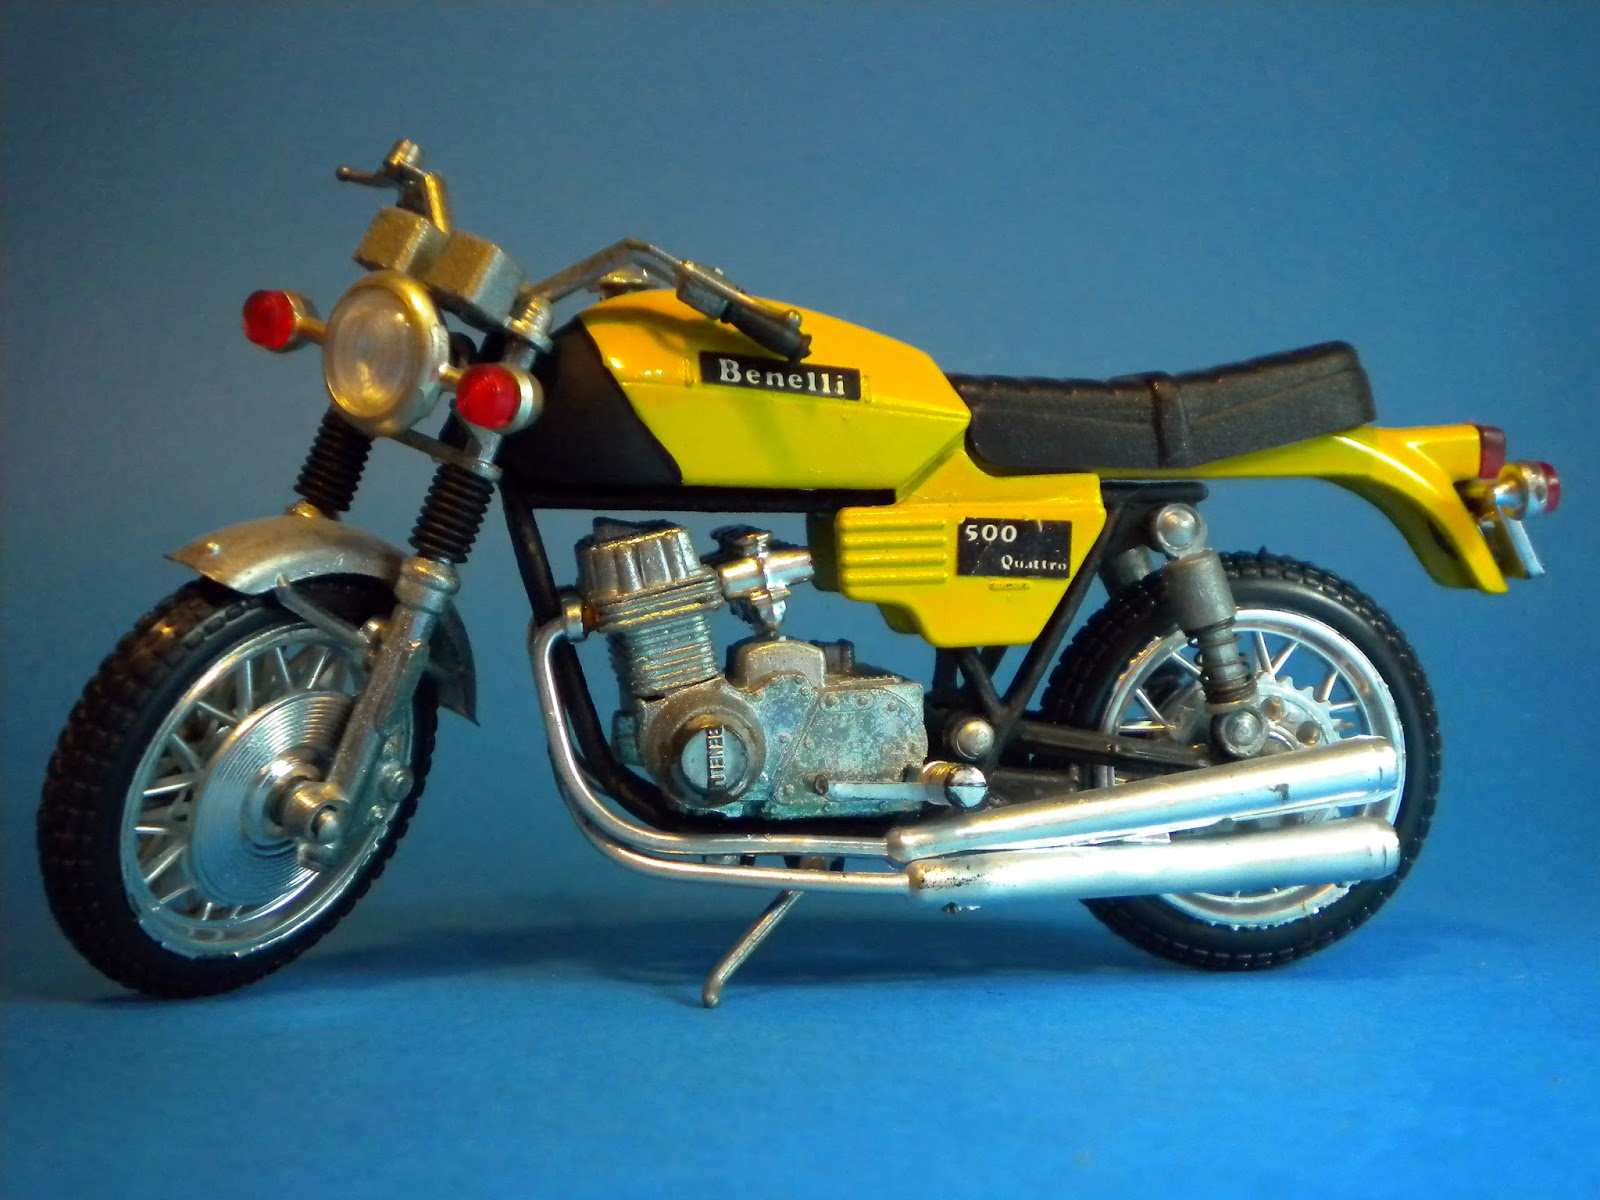 Benelli 500 Ouattro 1974 images #76085